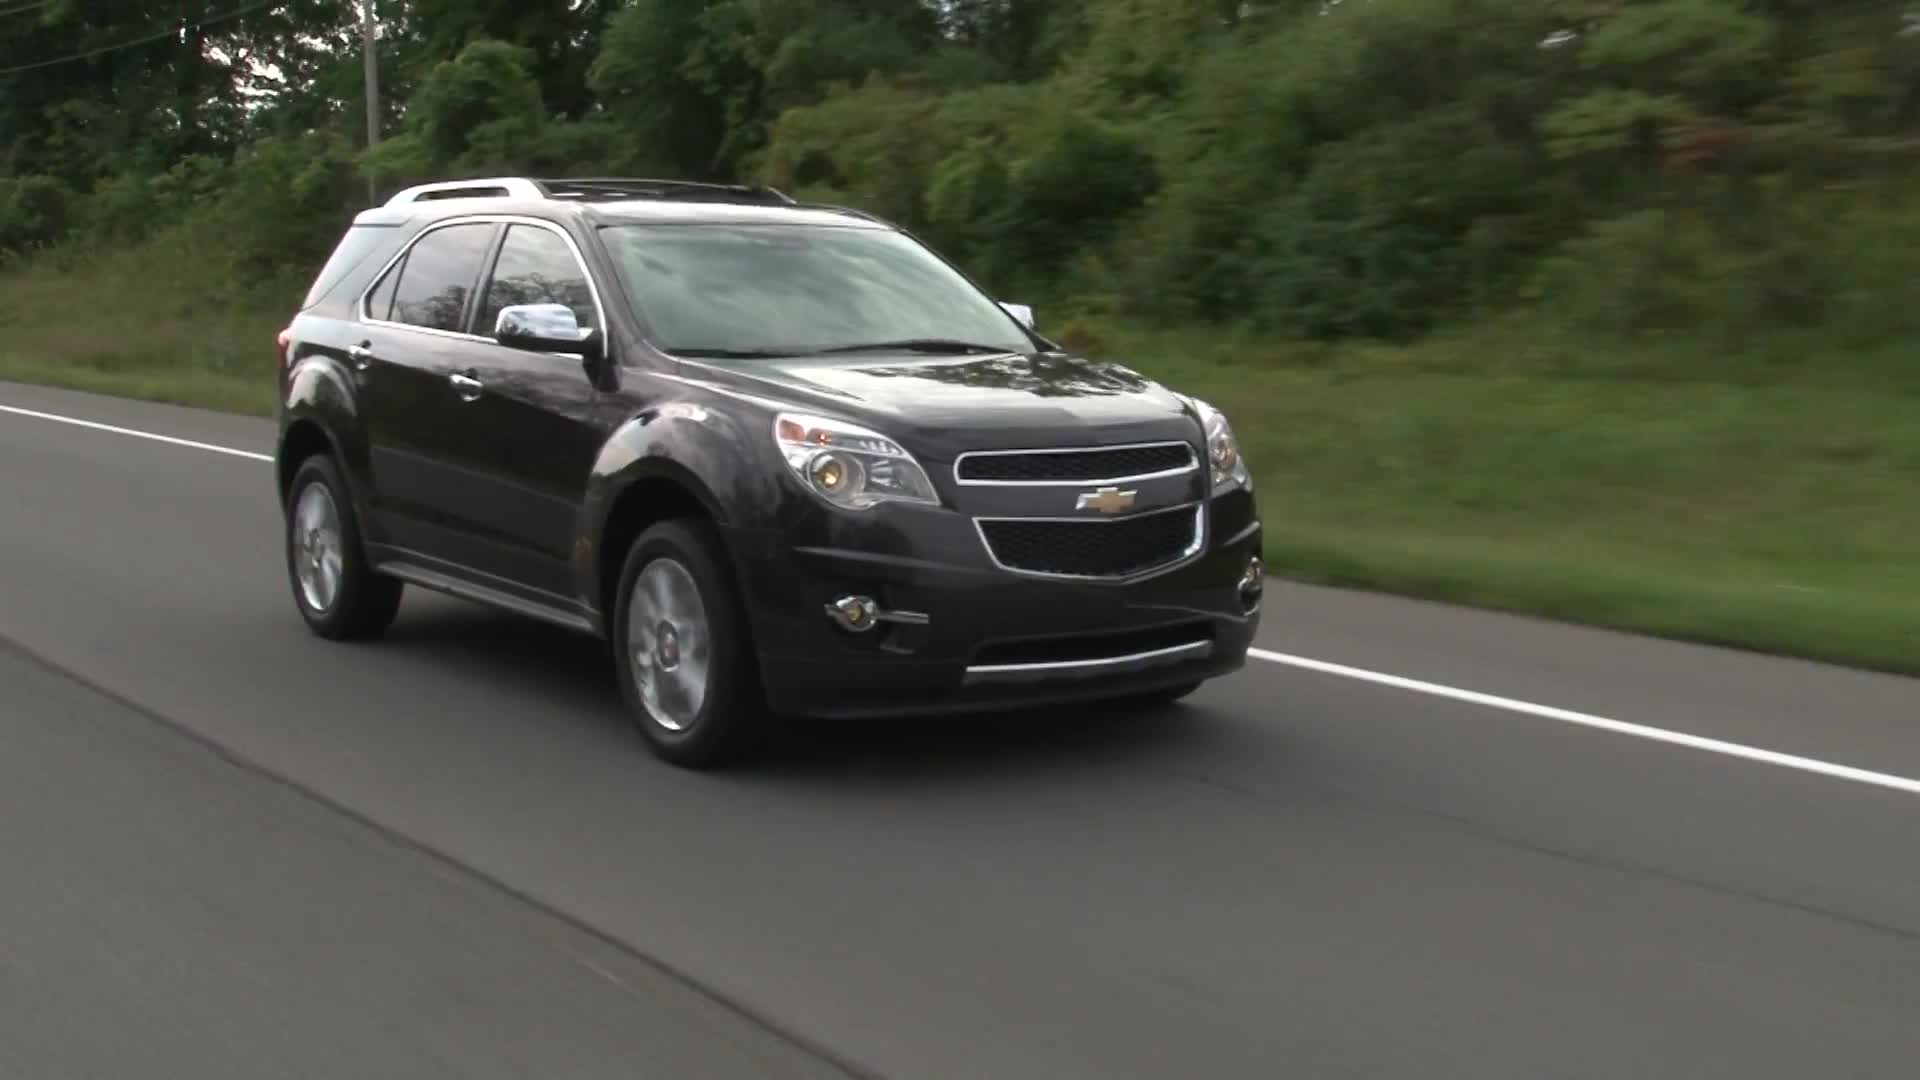 pictures of chevrolet equinox 2013 4. Cars Review. Best American Auto & Cars Review